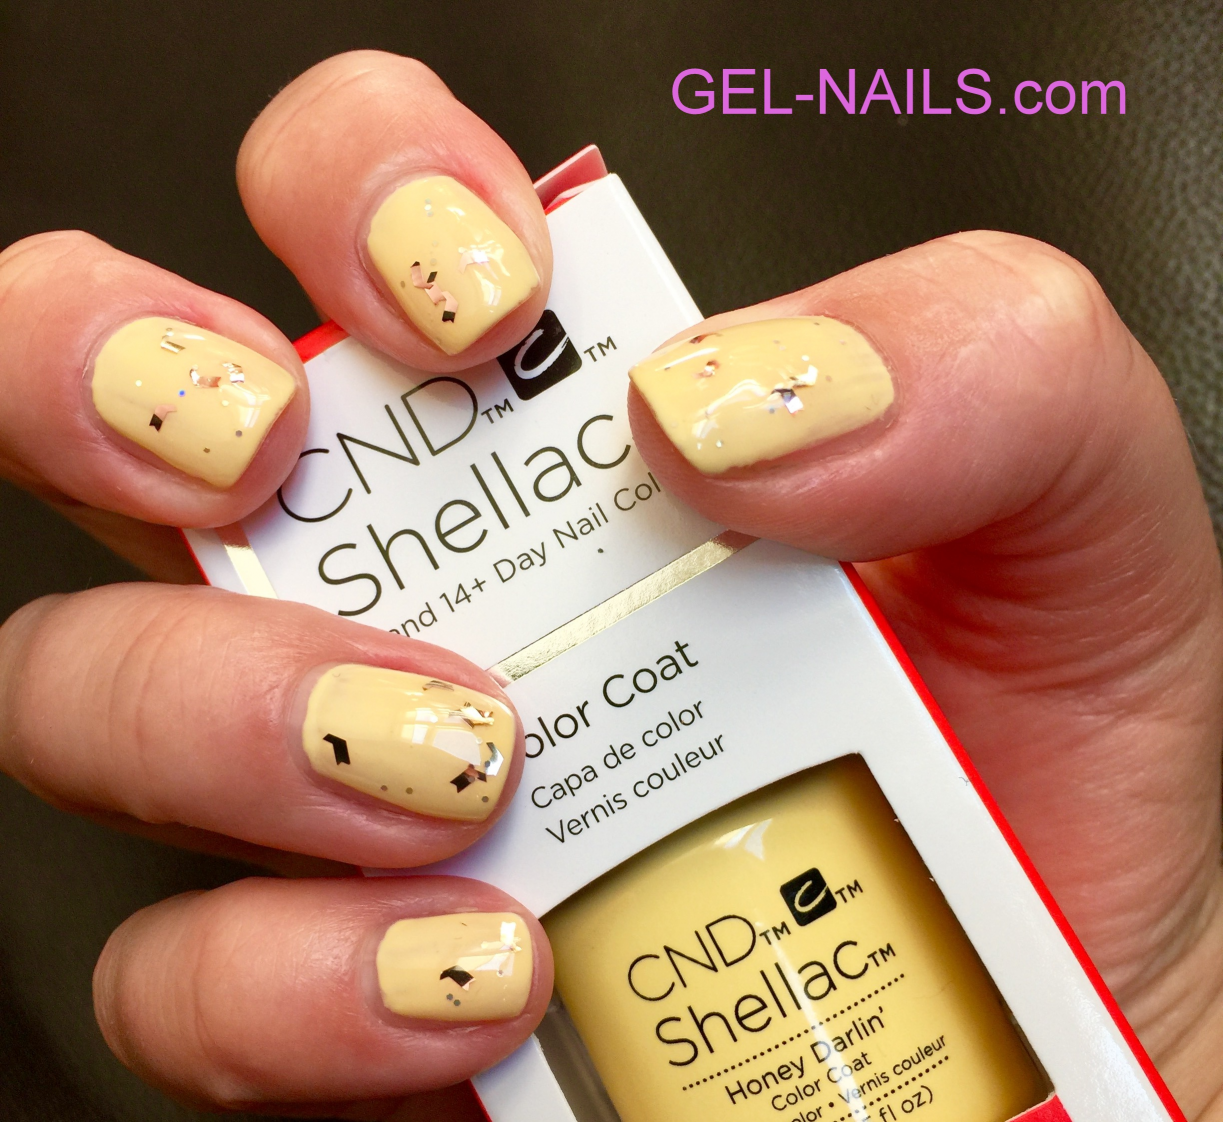 Shellac Nails: 5 Things To Know About Them